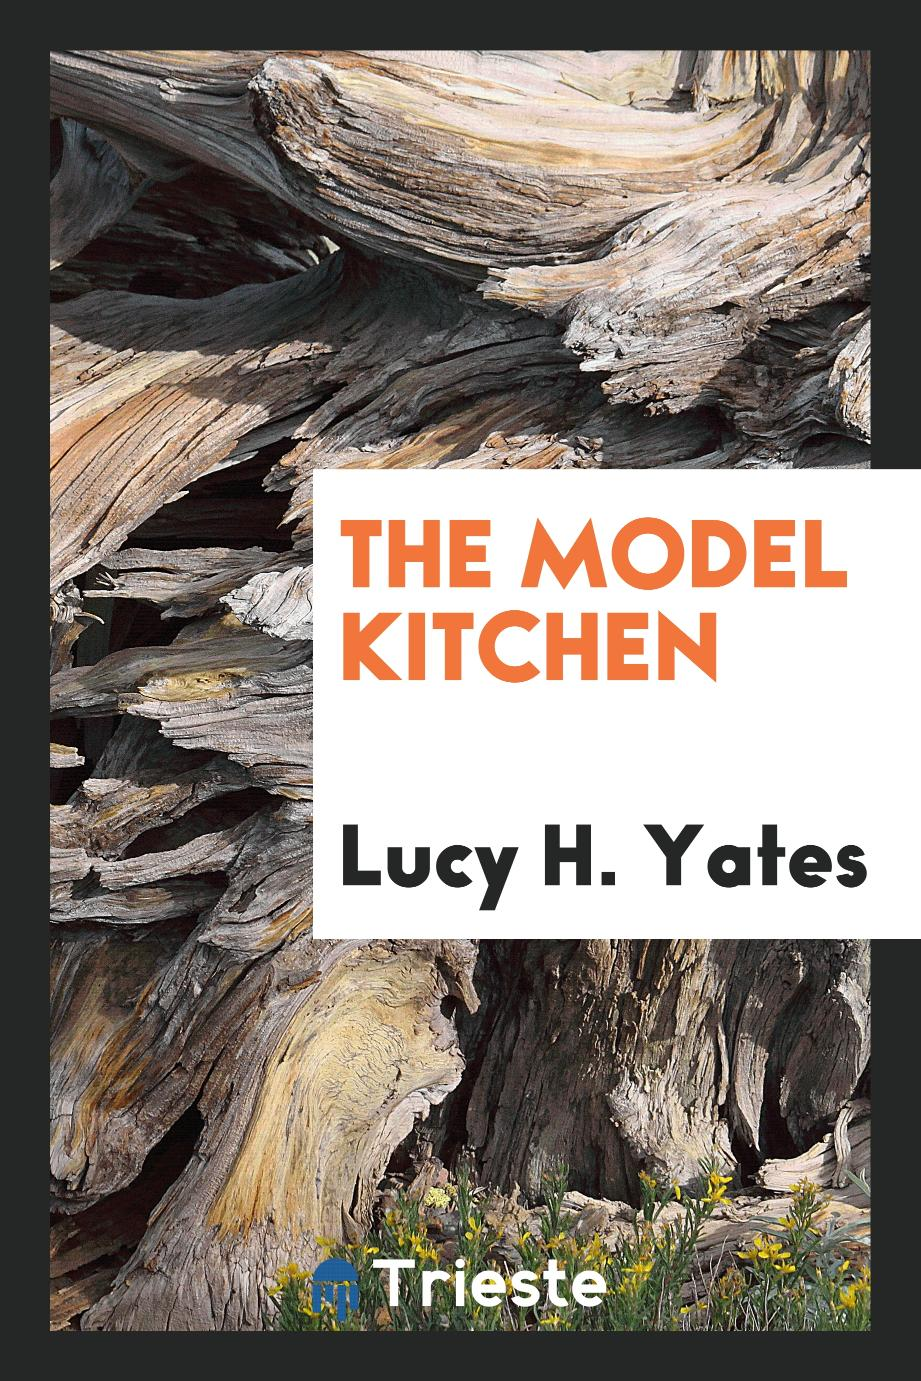 Lucy H. Yates - The Model Kitchen